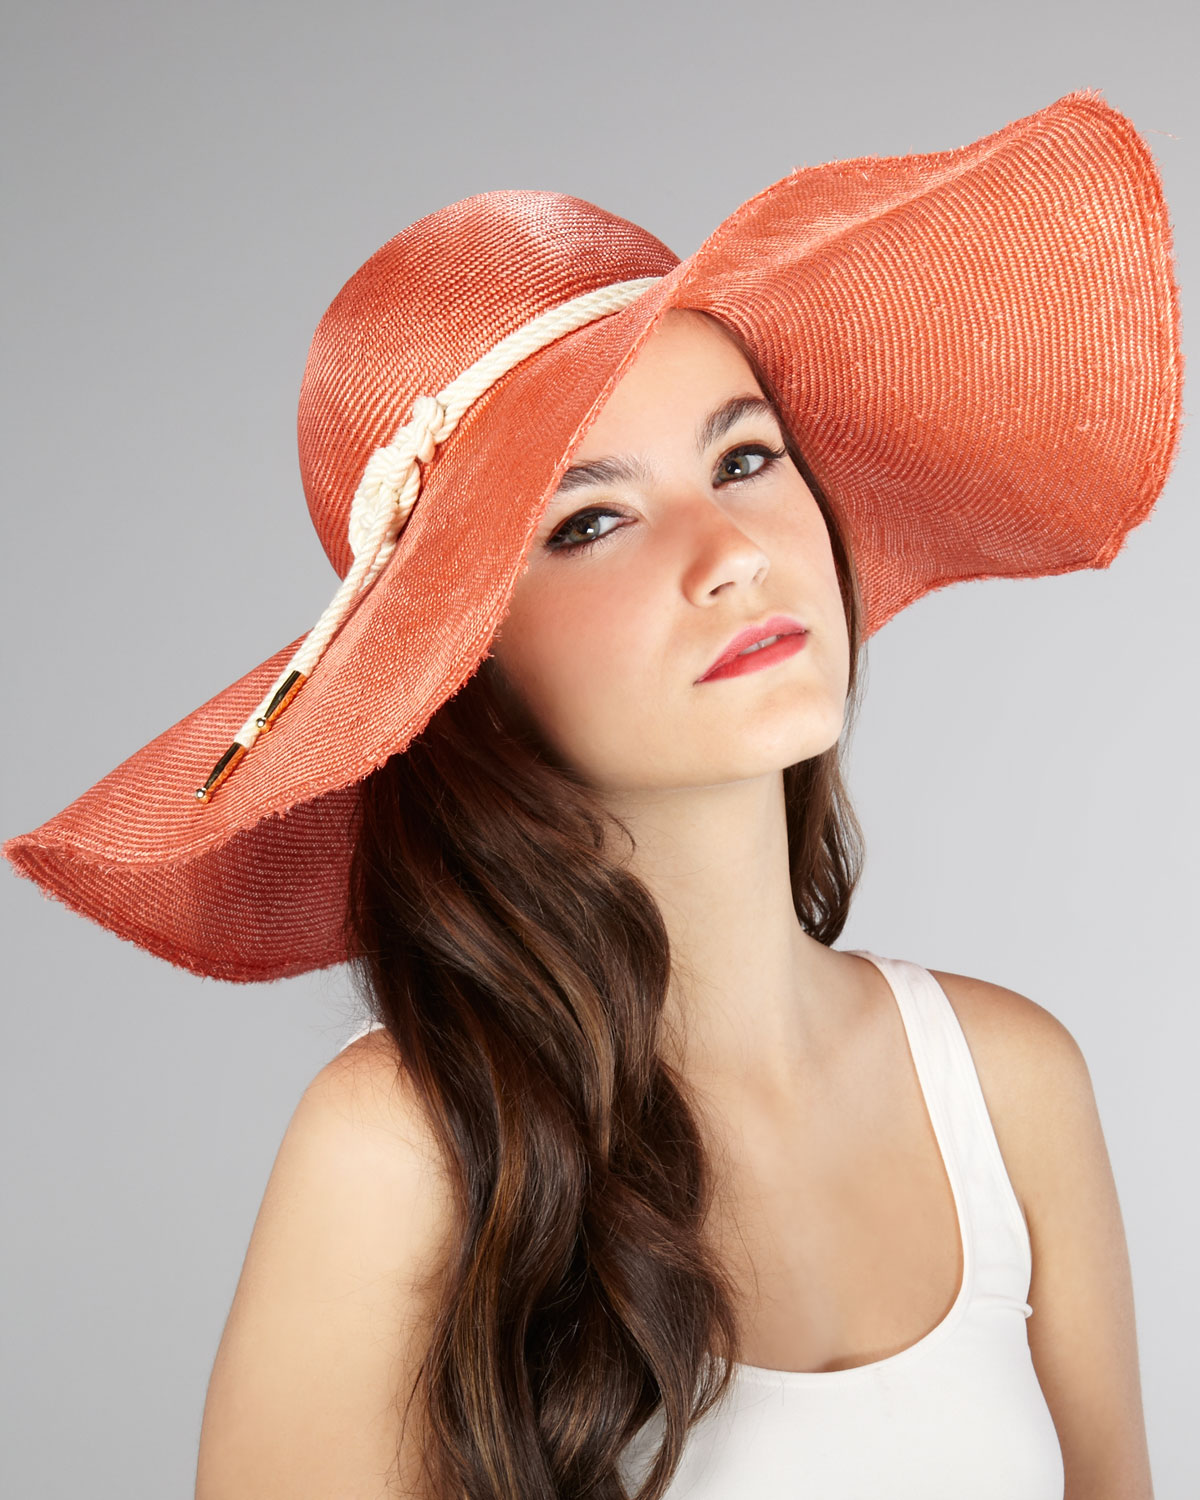 Lyst - Eugenia Kim Coral Sun Hat in Pink a286c437657